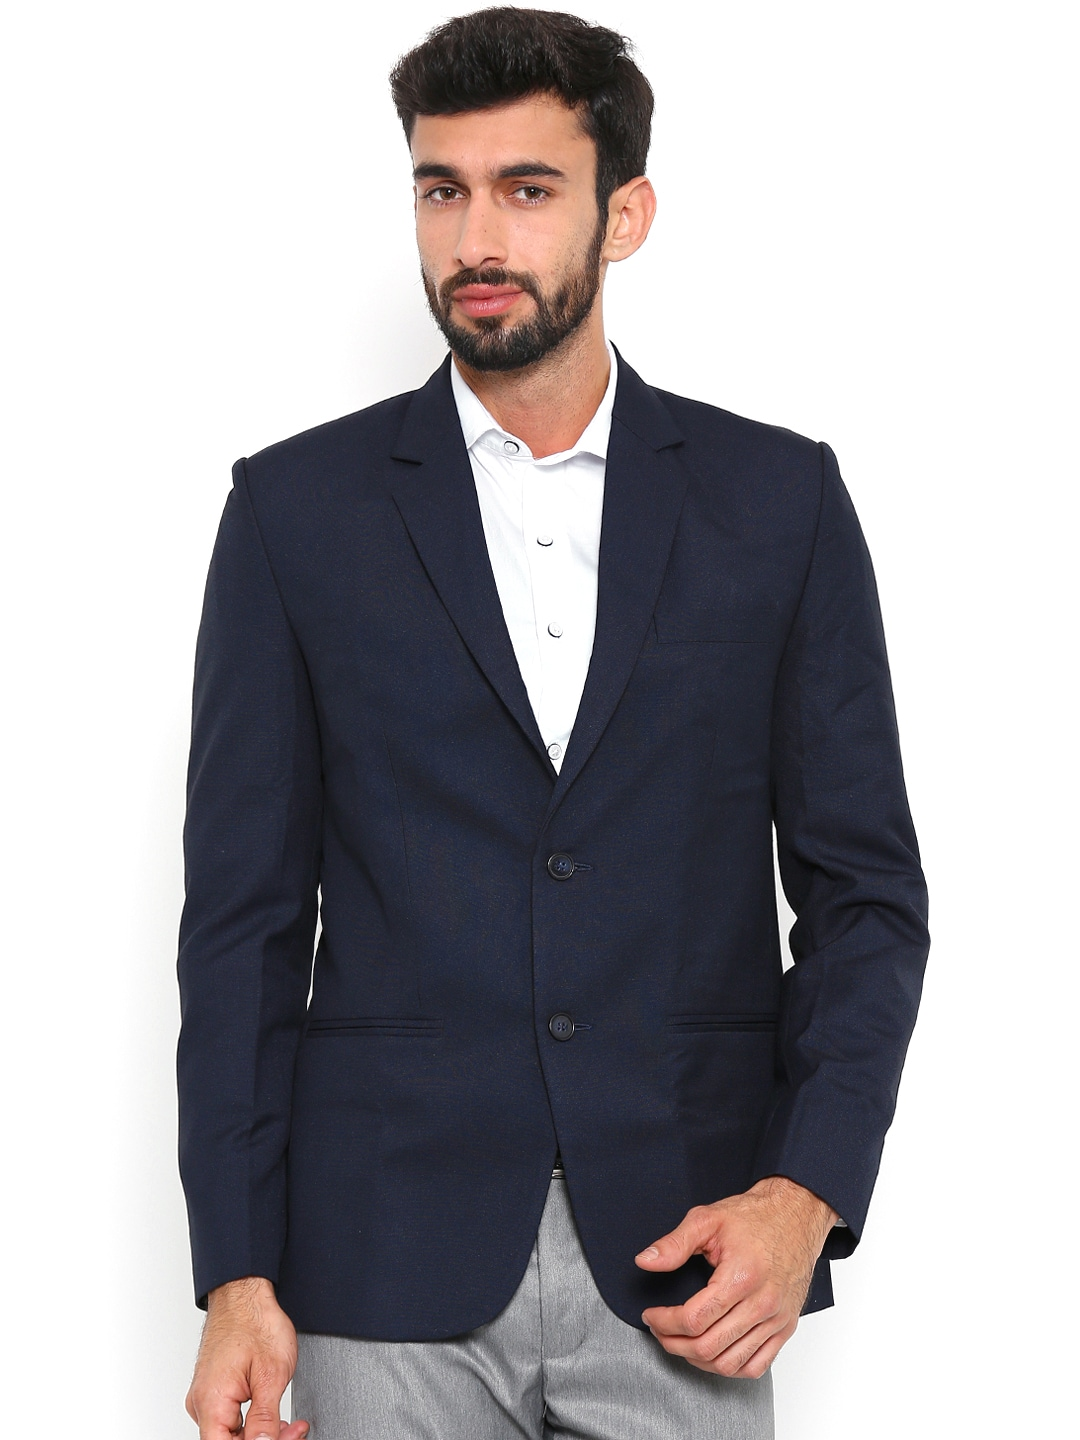 Formal Blazers Buy Online In India At Best Price Dasi Neck Tie Slim Polos Wedding Man Square Orange Black